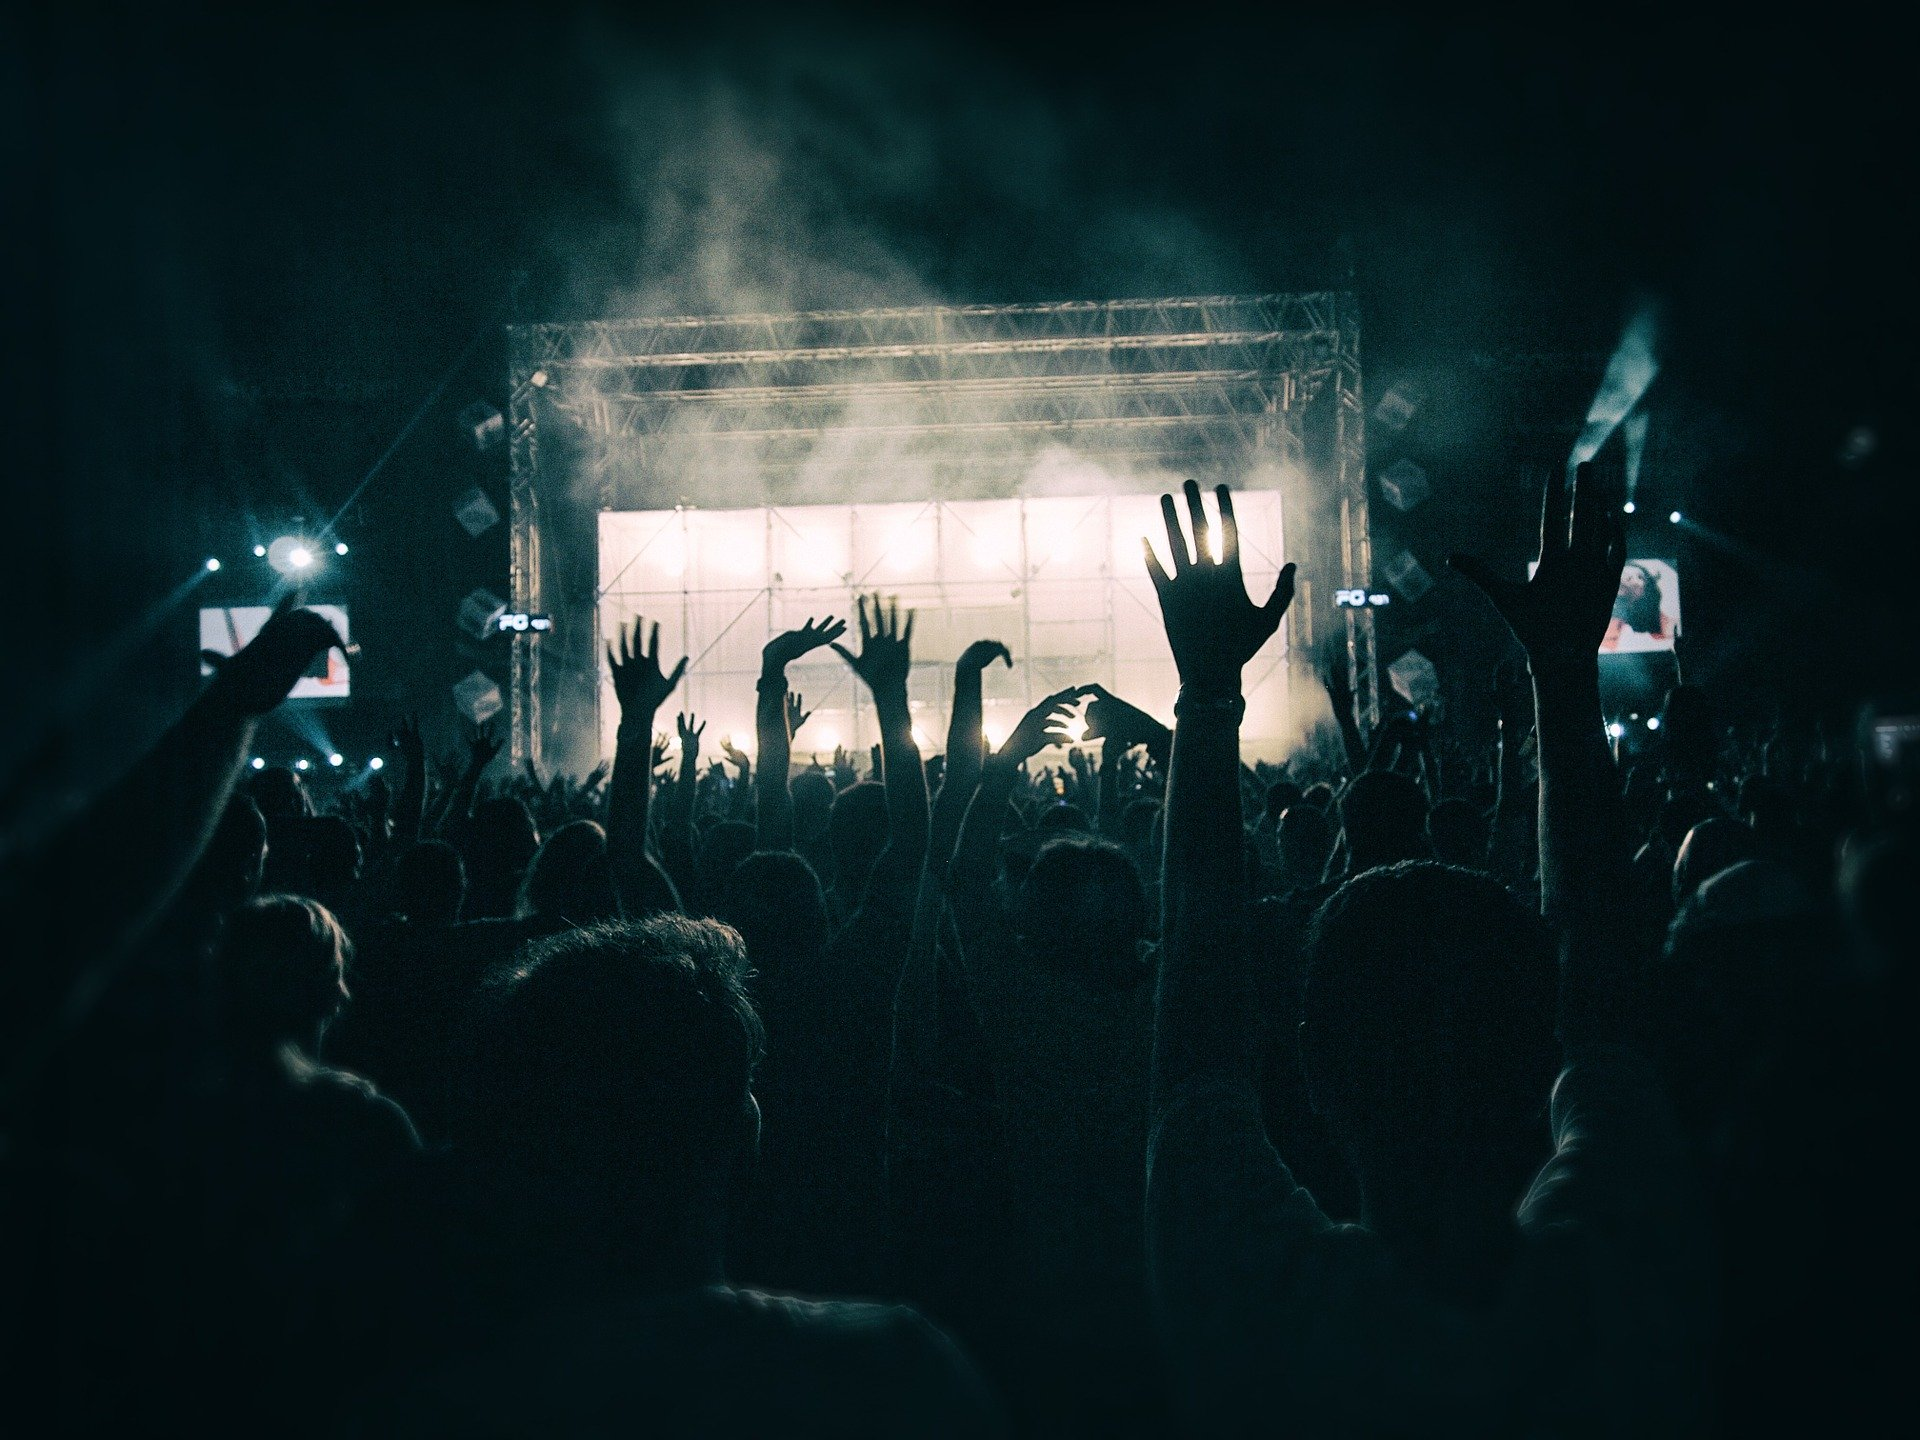 A photo of a crowd at a concert outdoors, On stage there are bright white lights and smoke. People's hands are raised in the foreground.